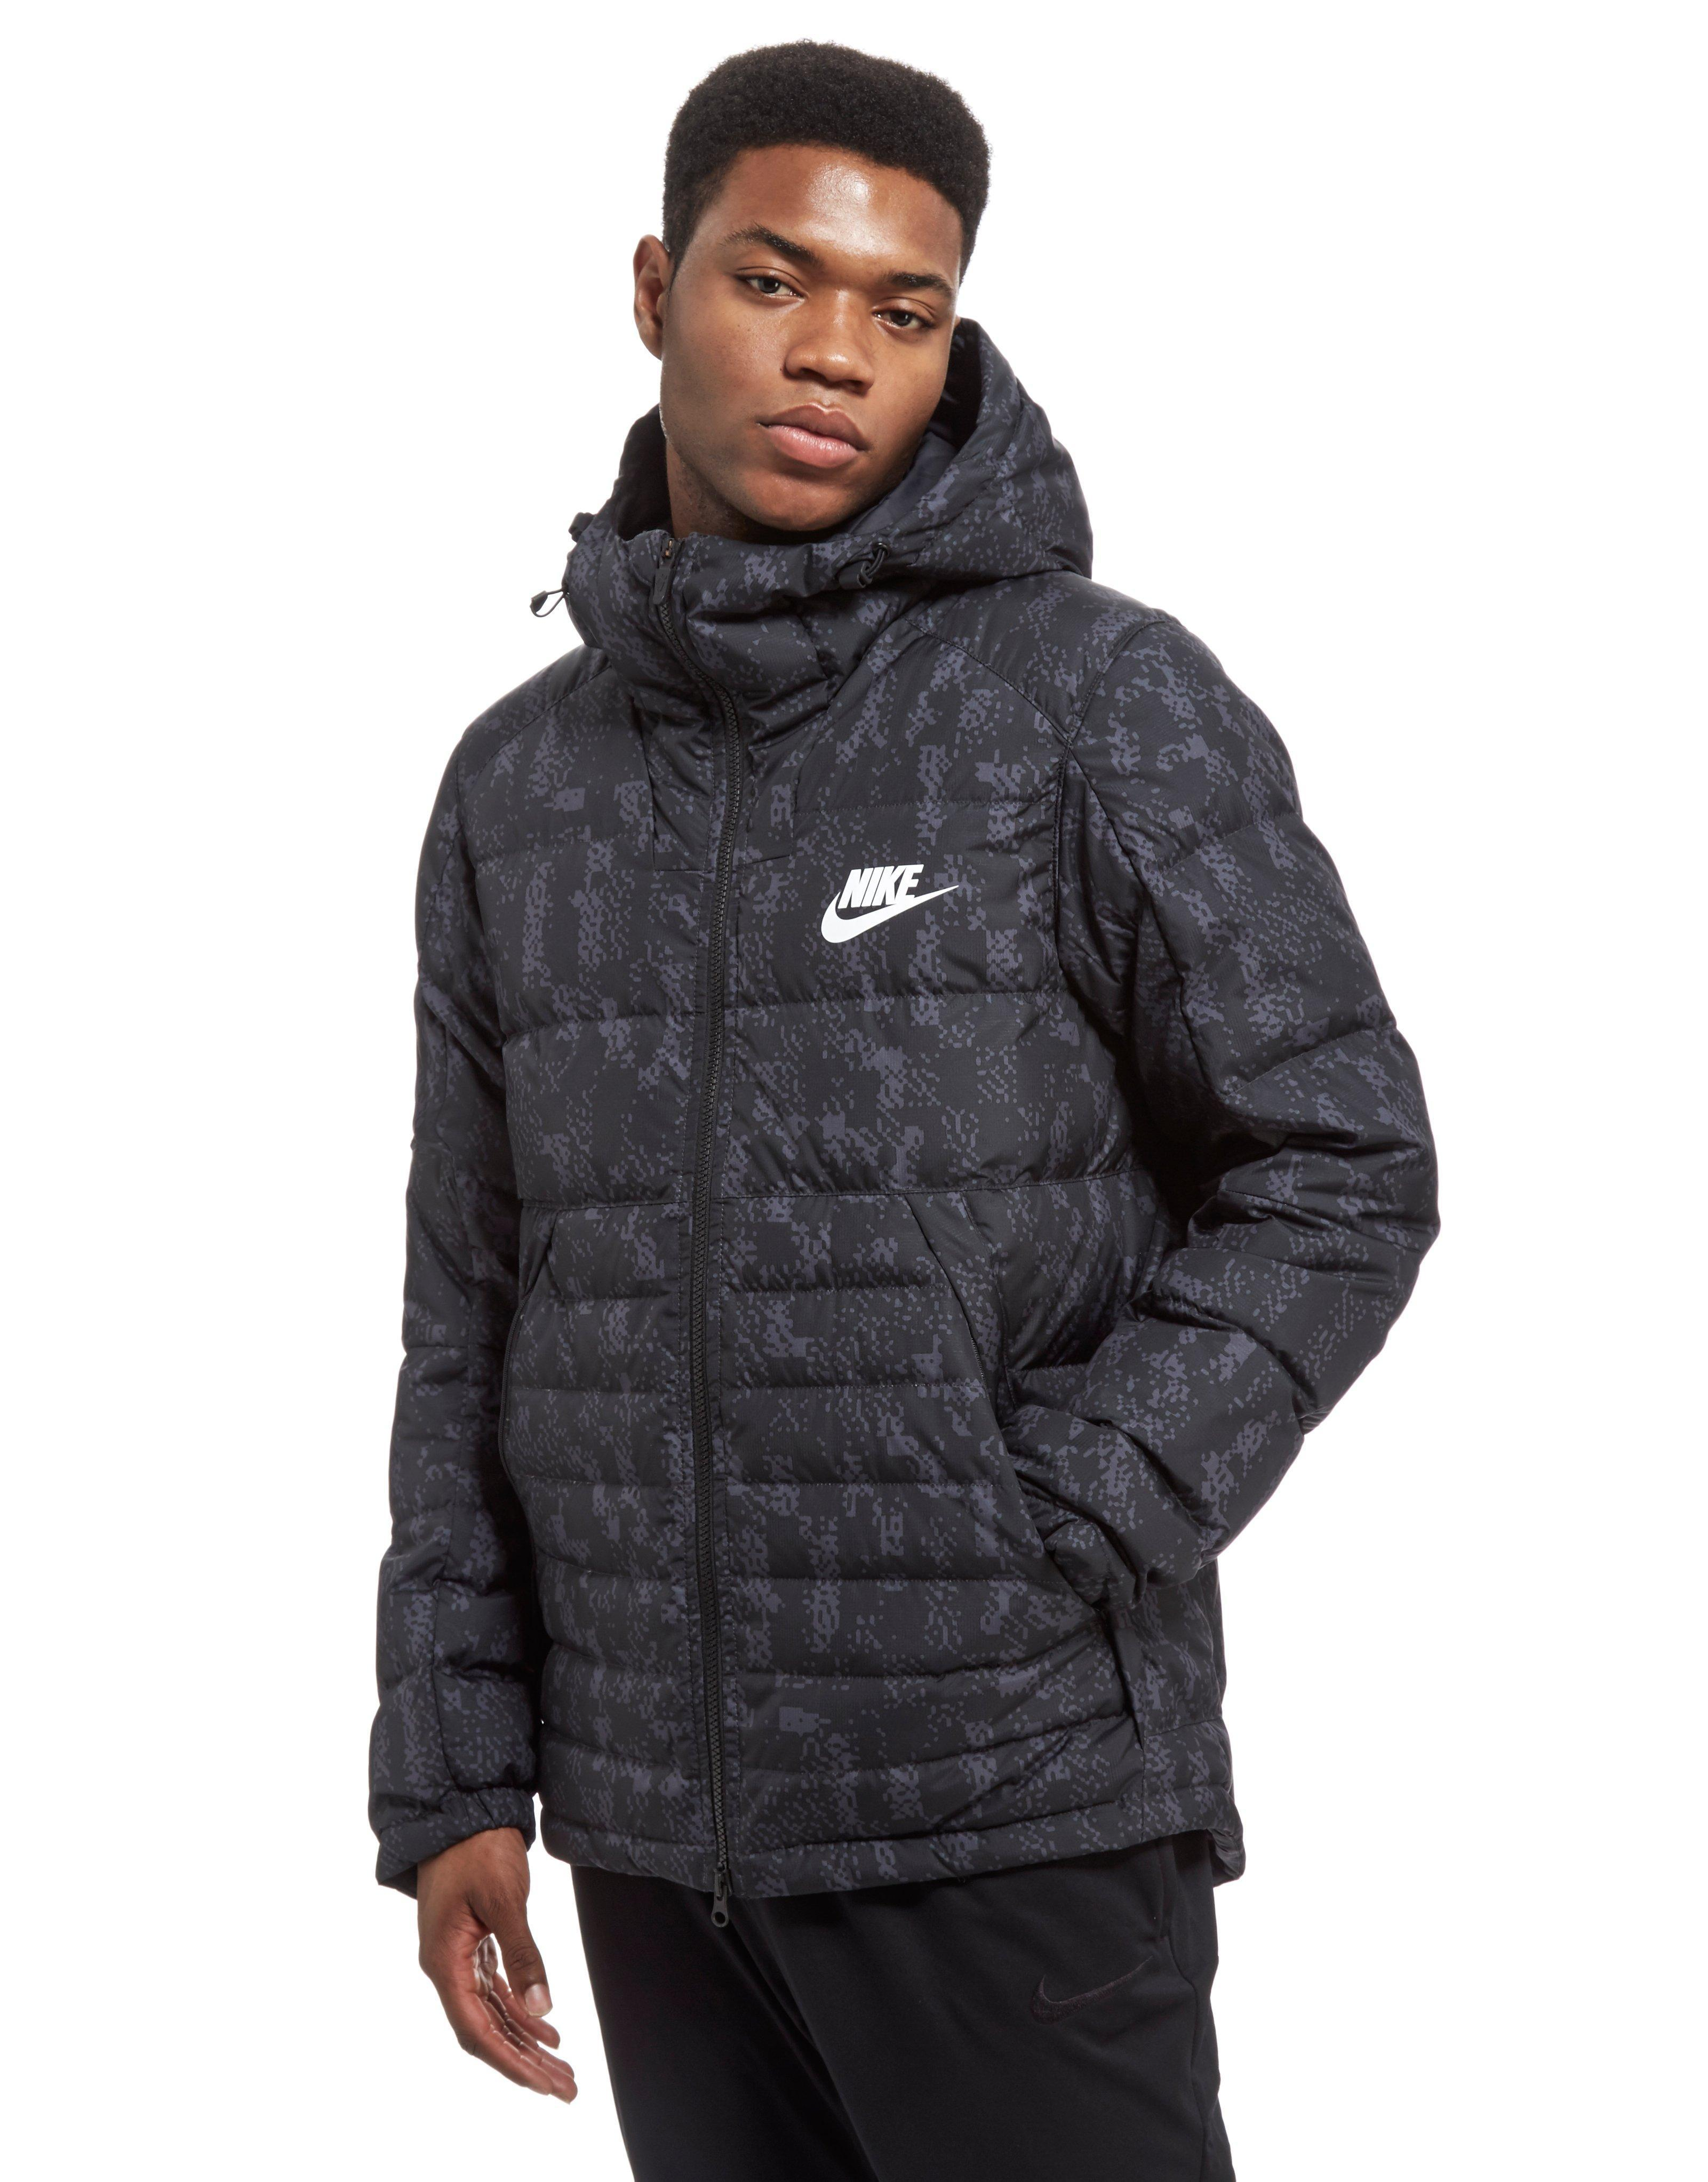 Lyst - Nike Printed Down Fill Hooded Jacket in Black for Men f1d3d6b2d